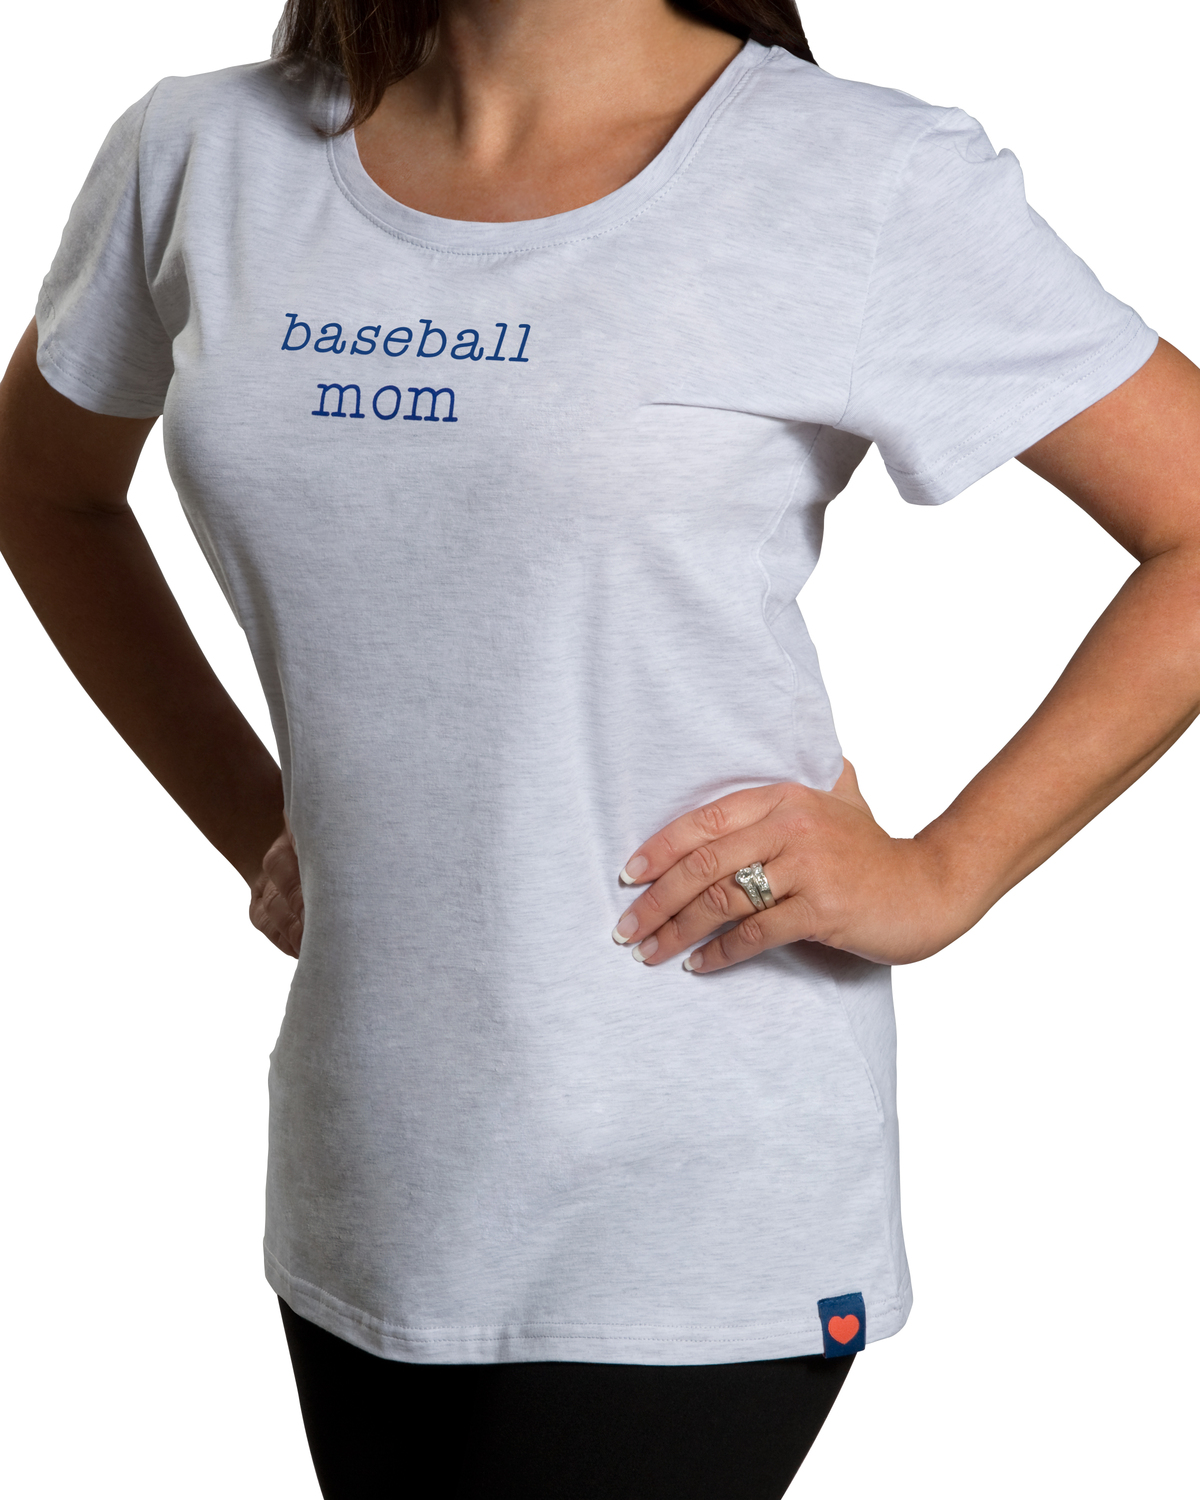 Milf baseball hat mothers day gift by one stop